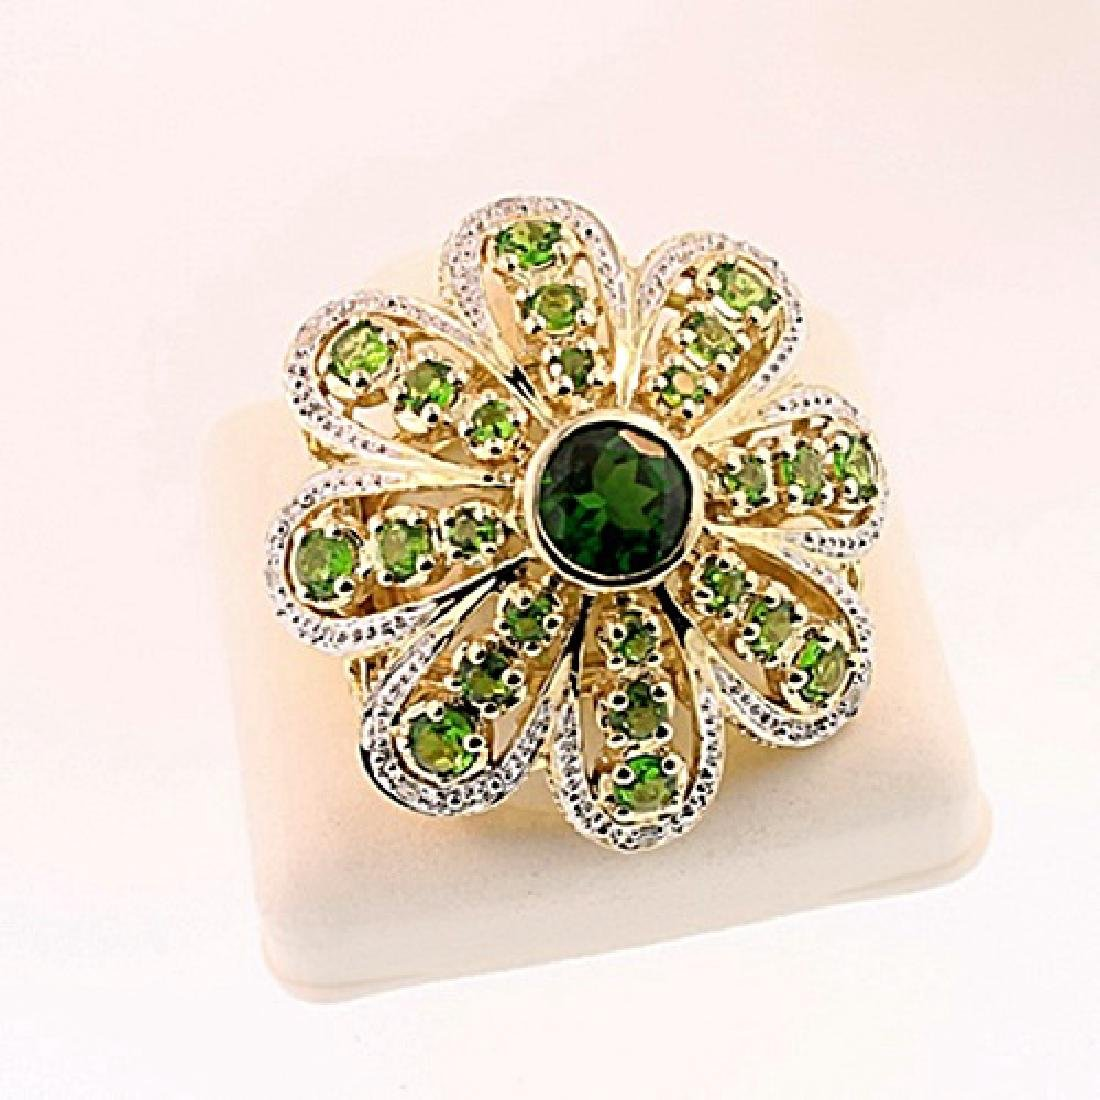 SILVER RING WITH CHROME DIOPSIDE AND DIAMOND